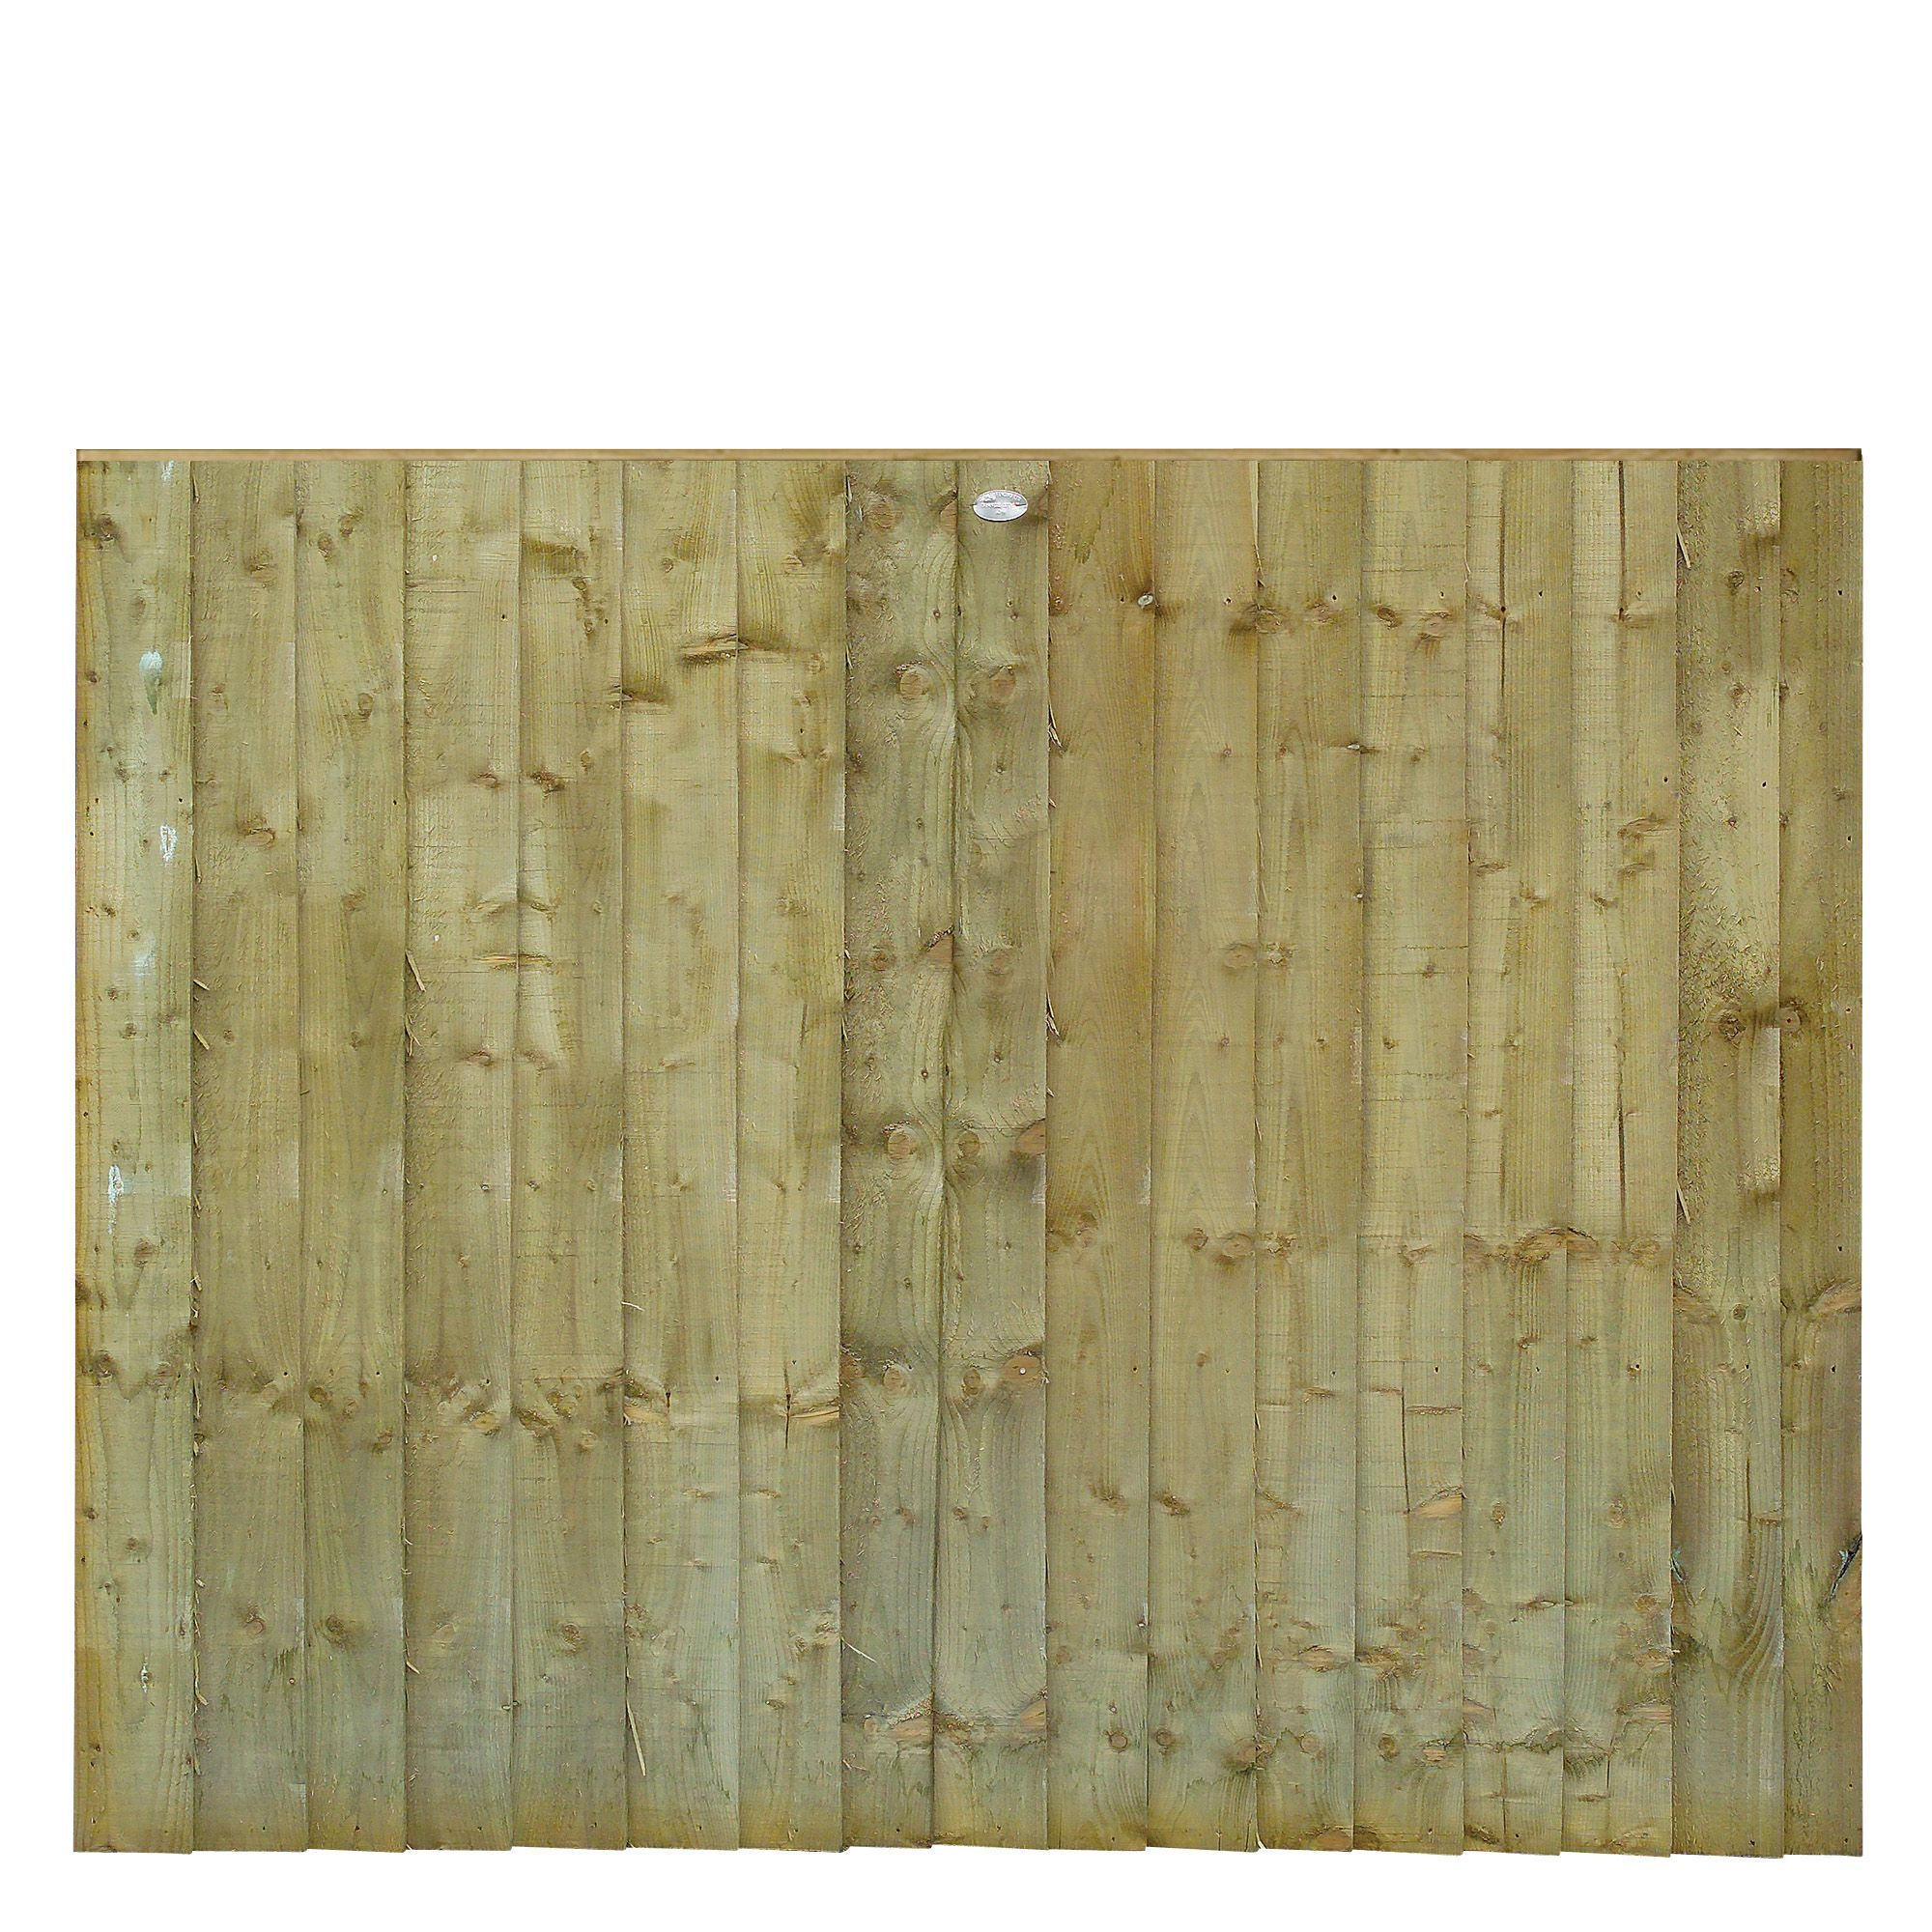 Grange Professional Feather Edge Overlap Vertical Slat Fence Panel (w)1.83 M (h)1.5m, Pack Of 3